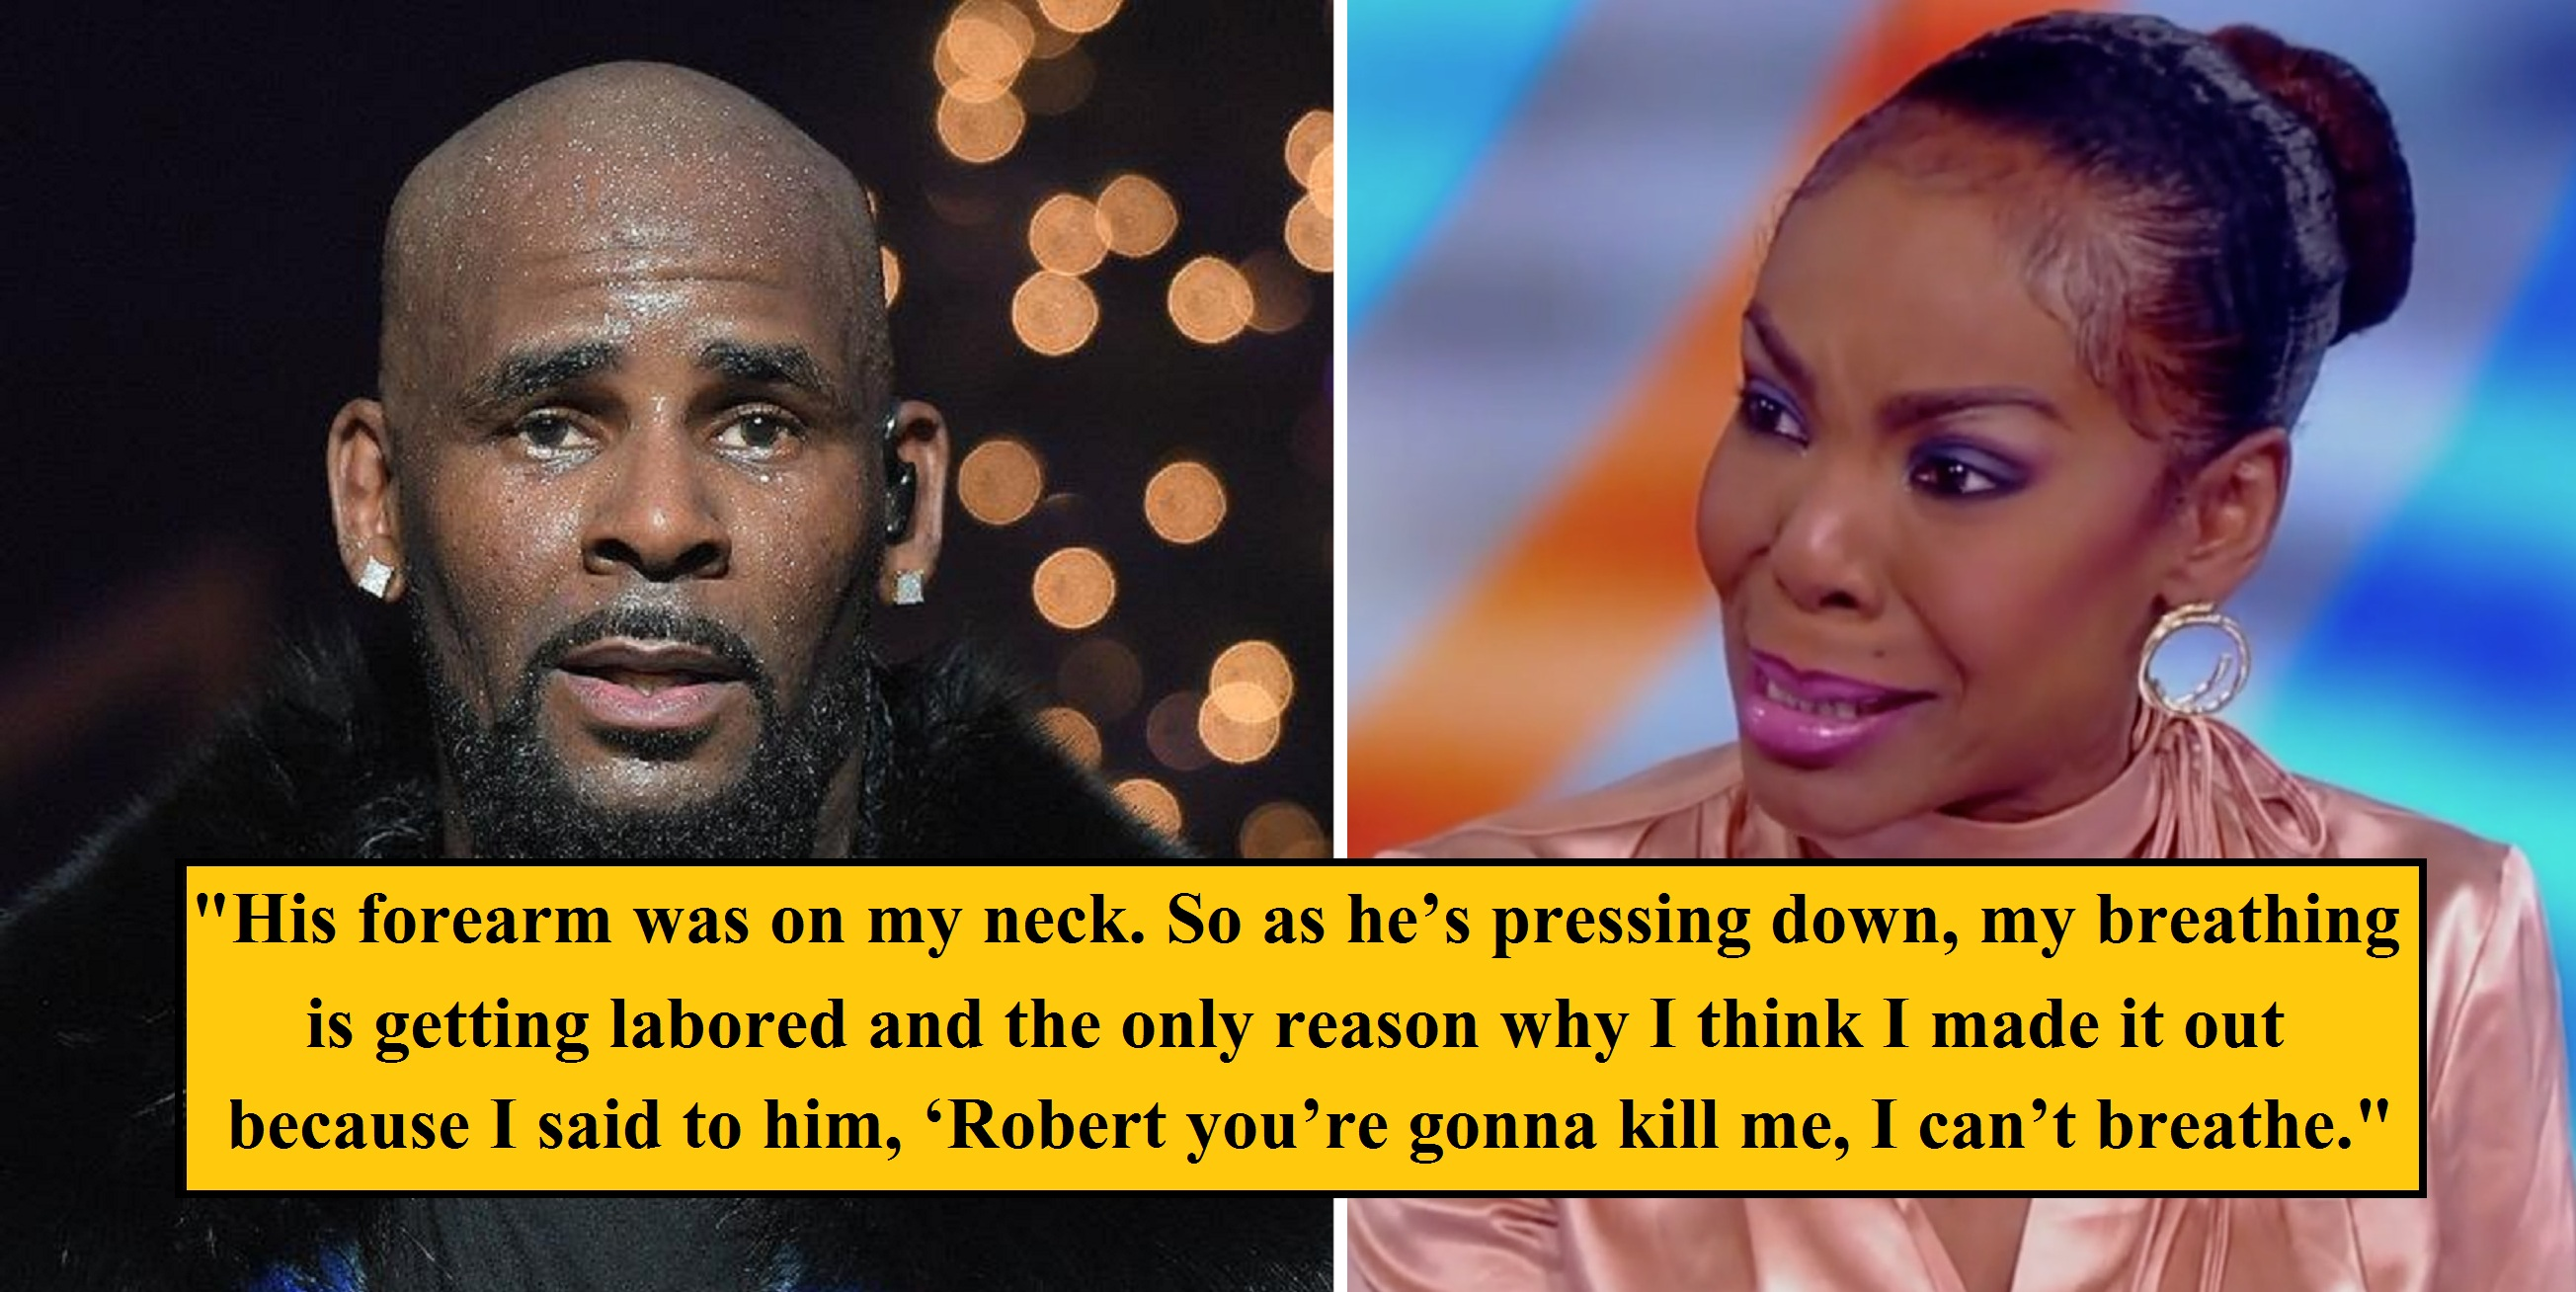 R. Kelly's Ex-Wife Opens Up About Abuse and Attempting Suicide